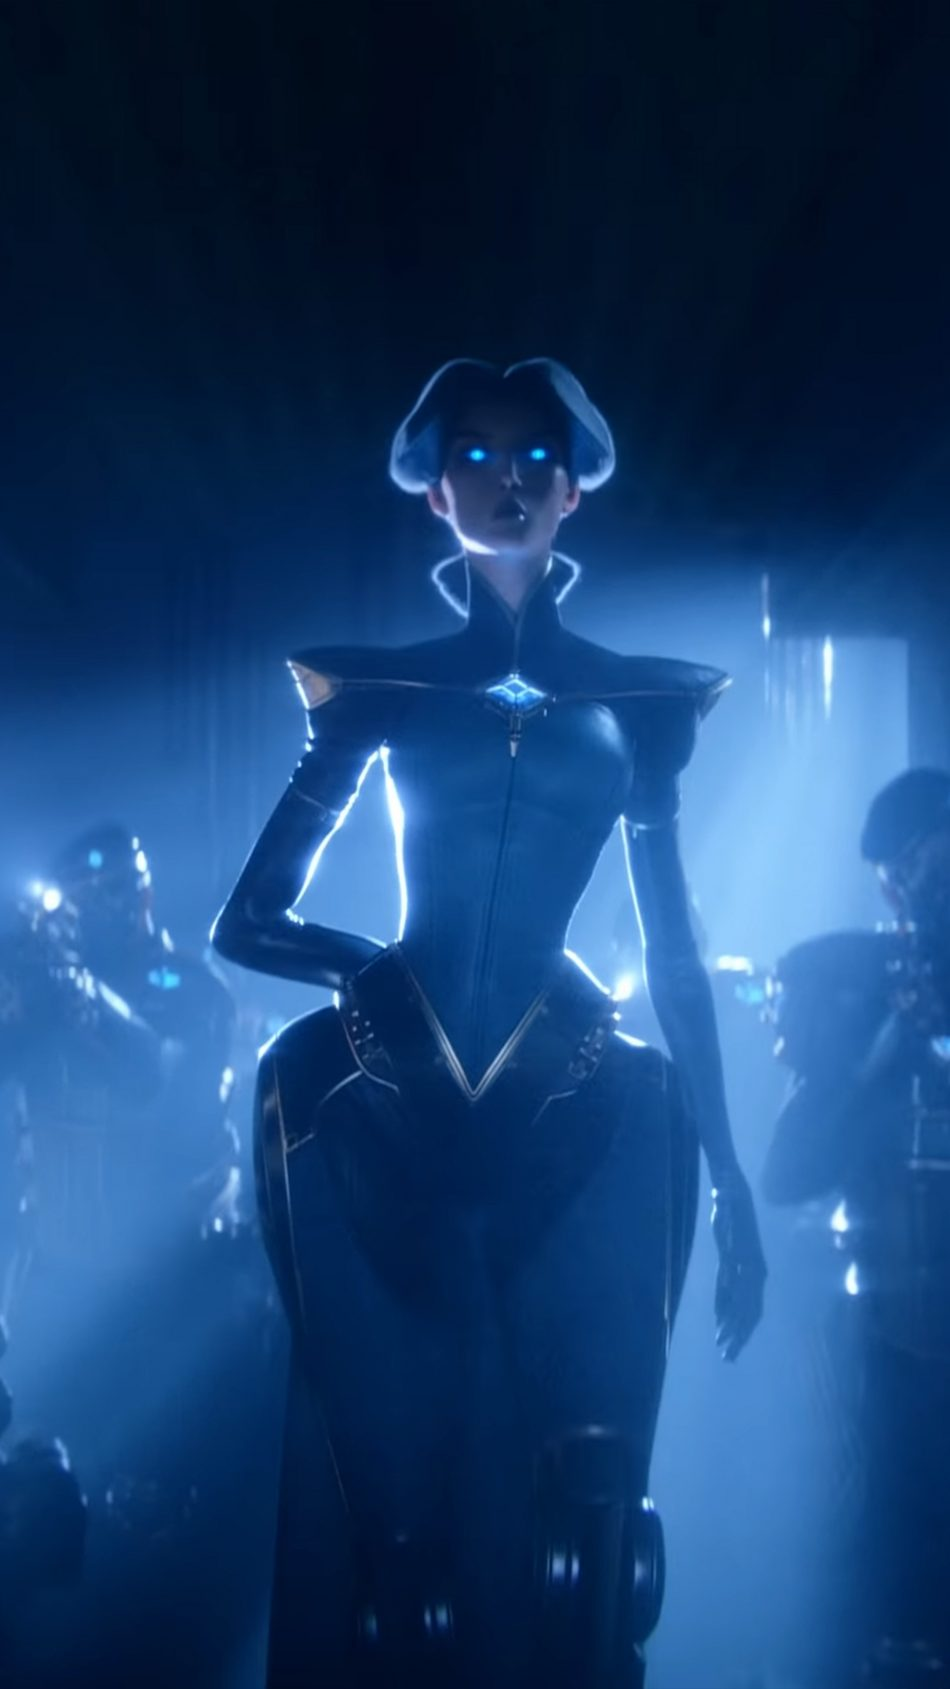 Download Camille League Of Legends Free Pure 4k Ultra Hd